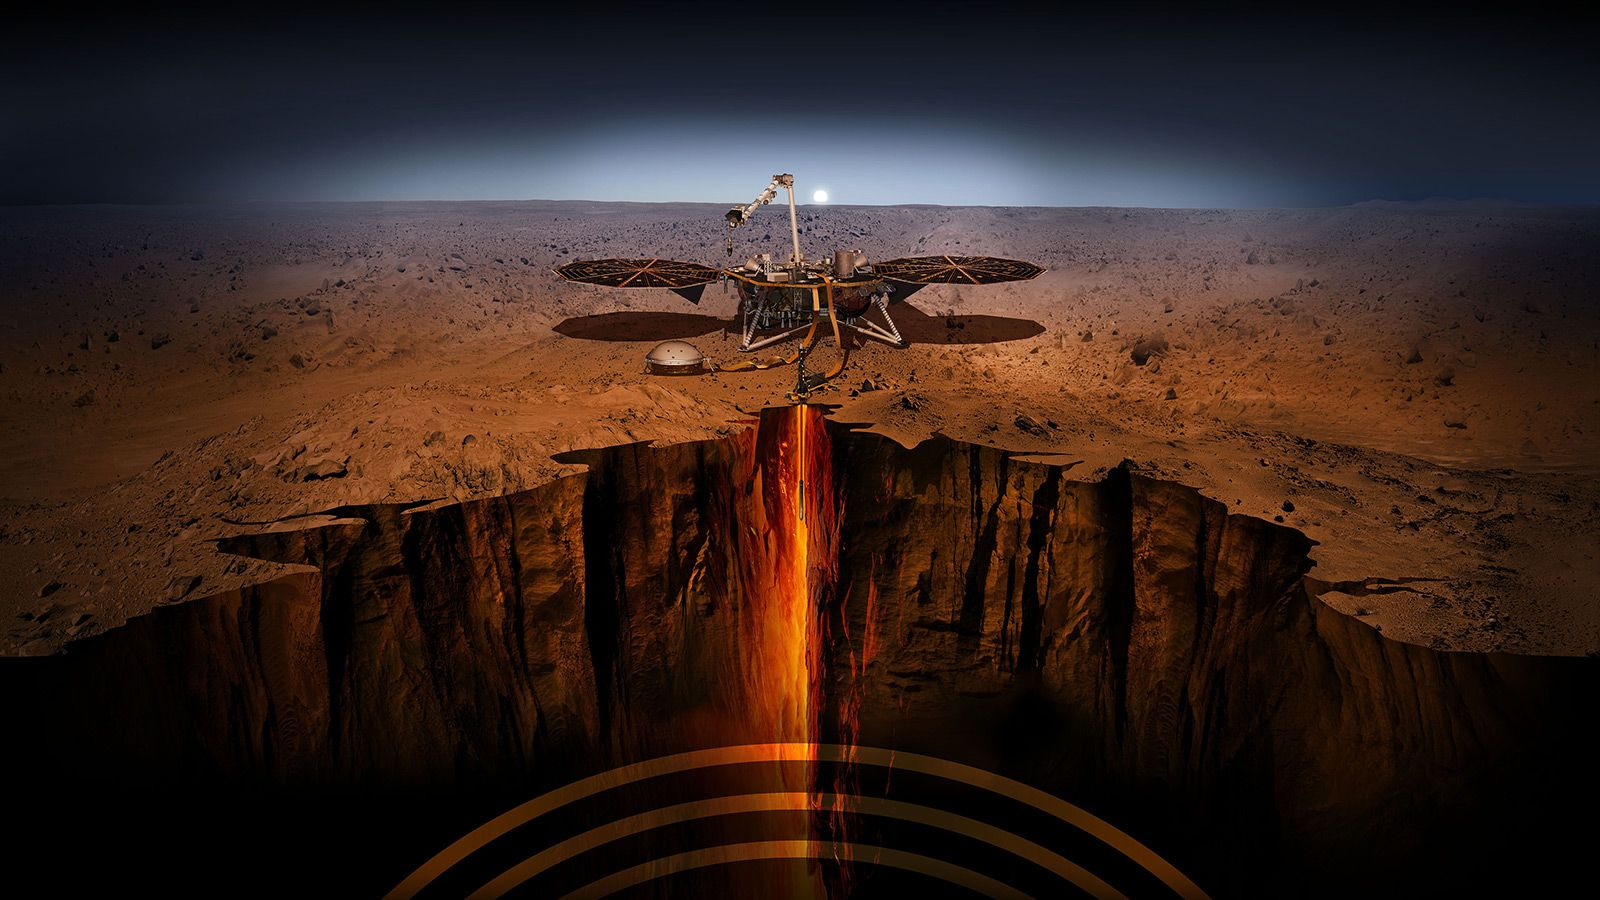 mars rover insight photos - photo #12